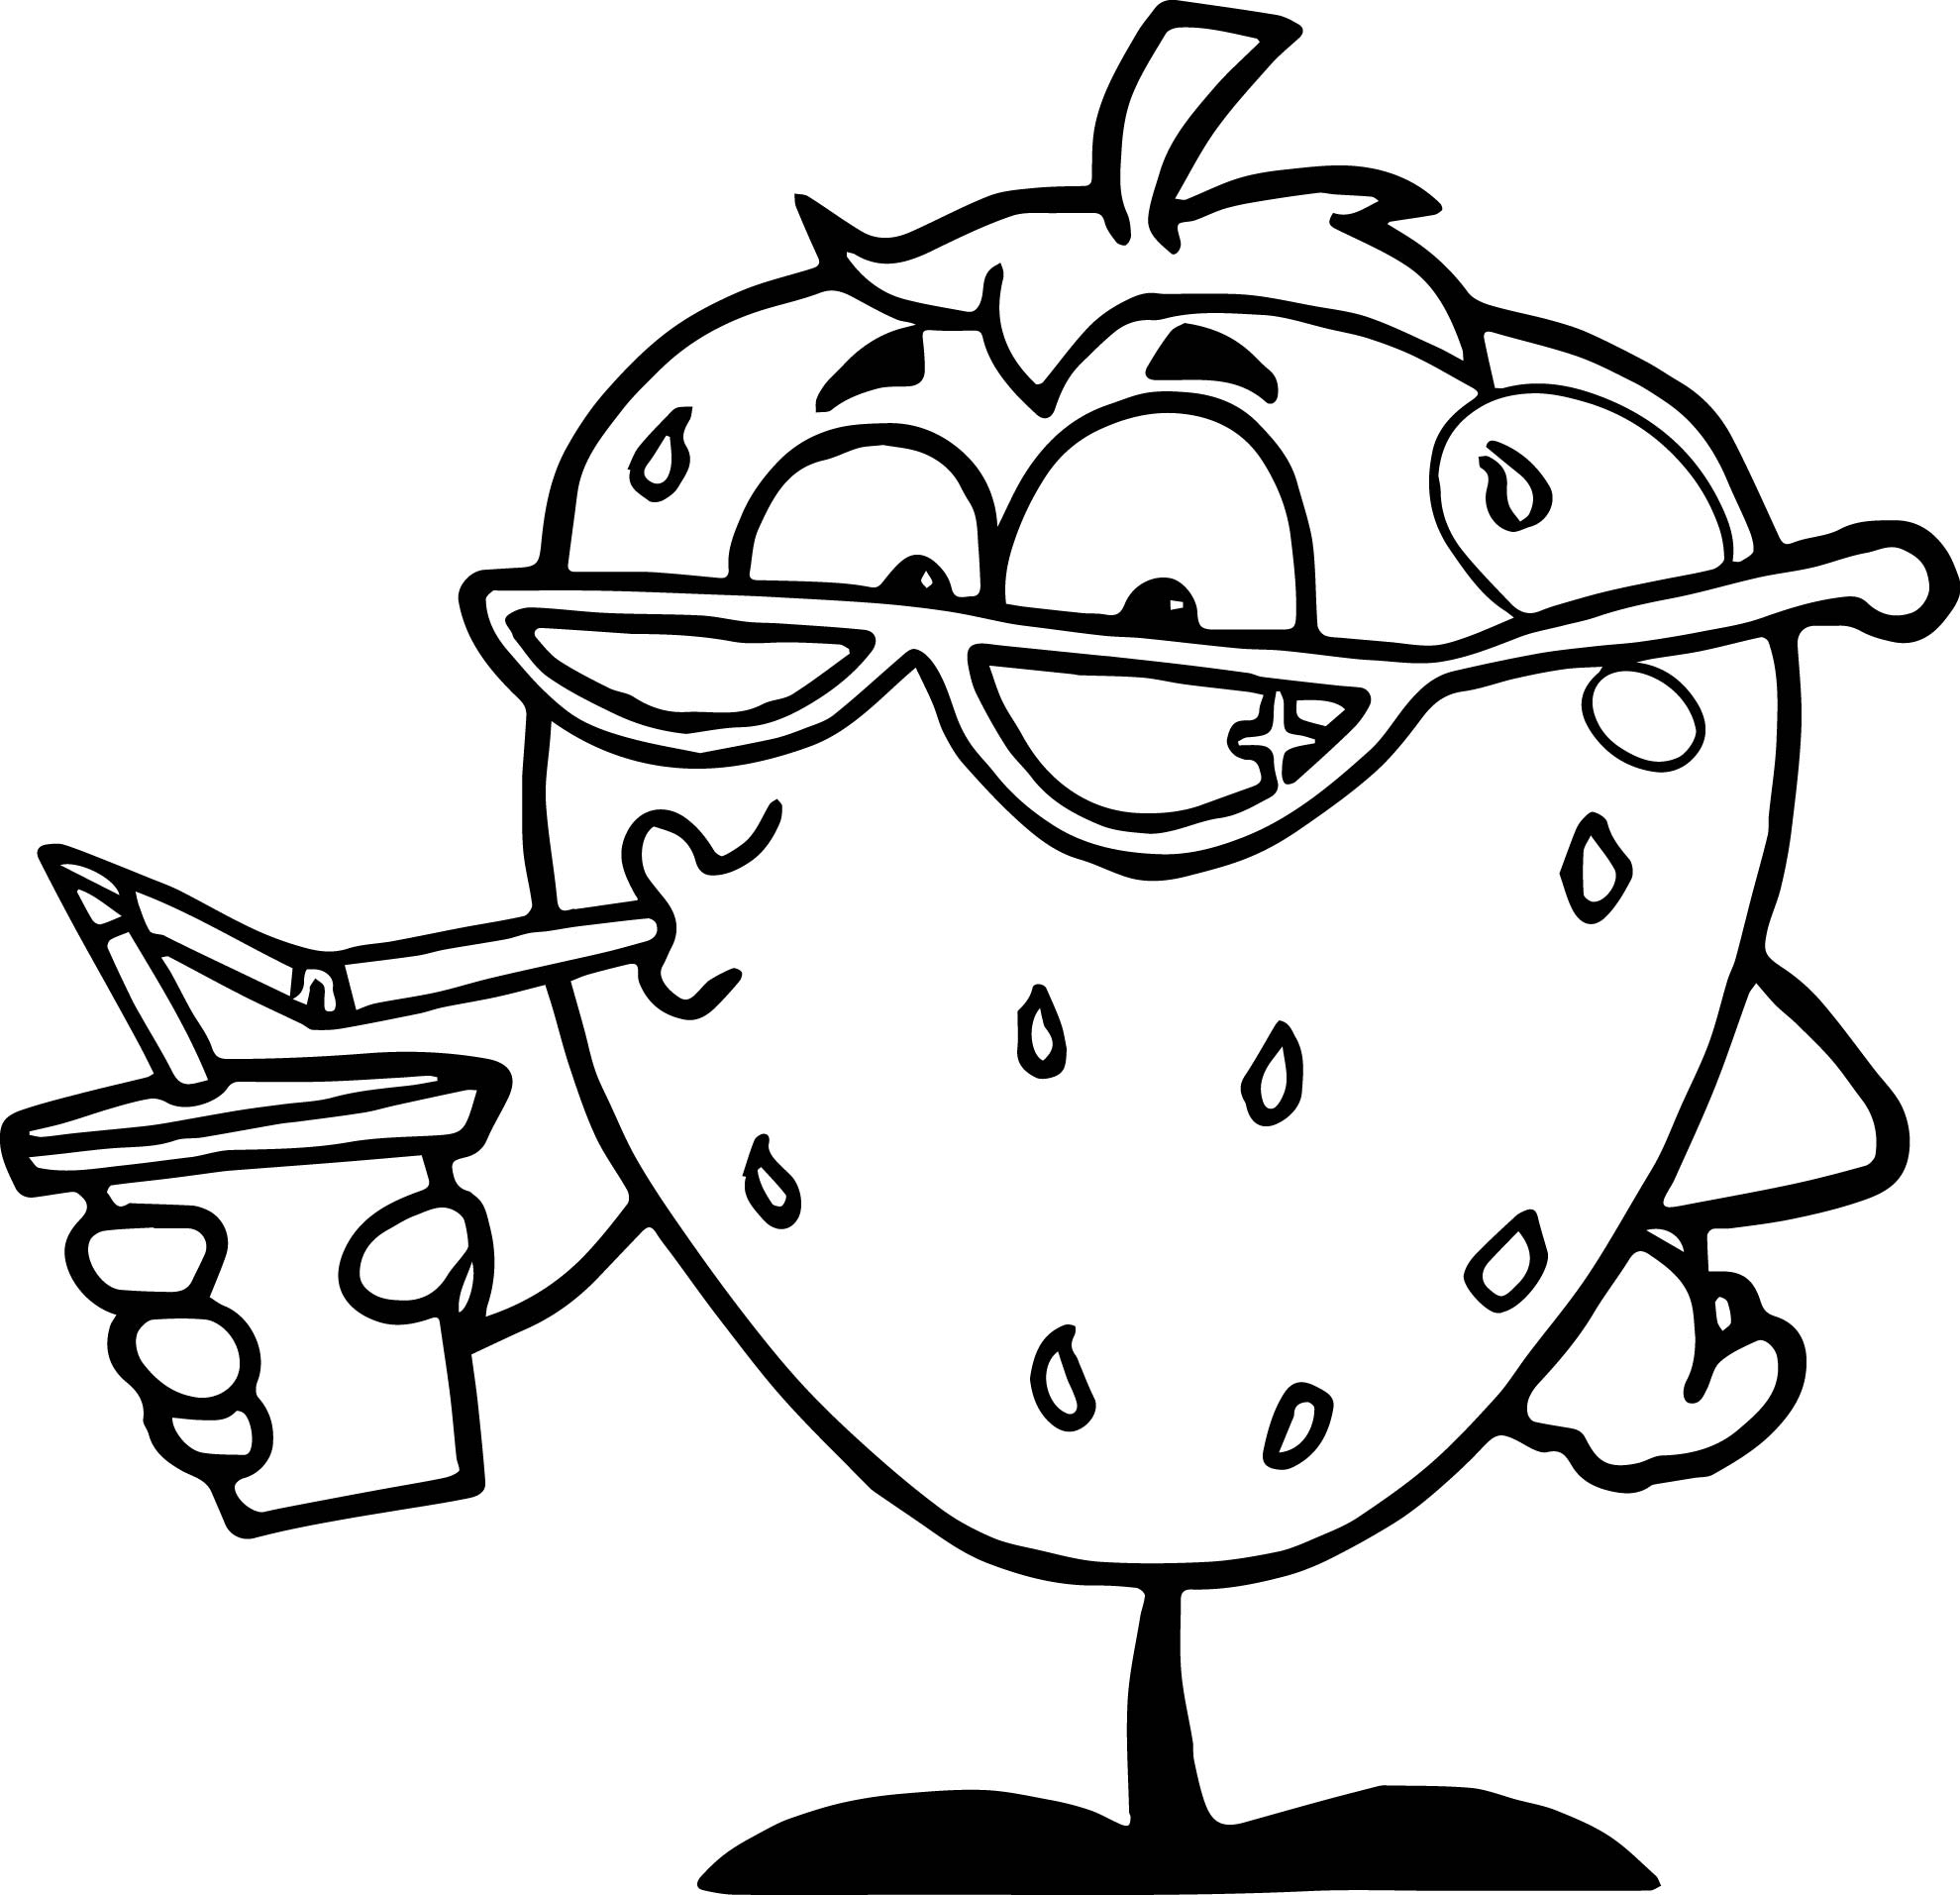 Strawberry Drink Cartoon Character Coloring Page